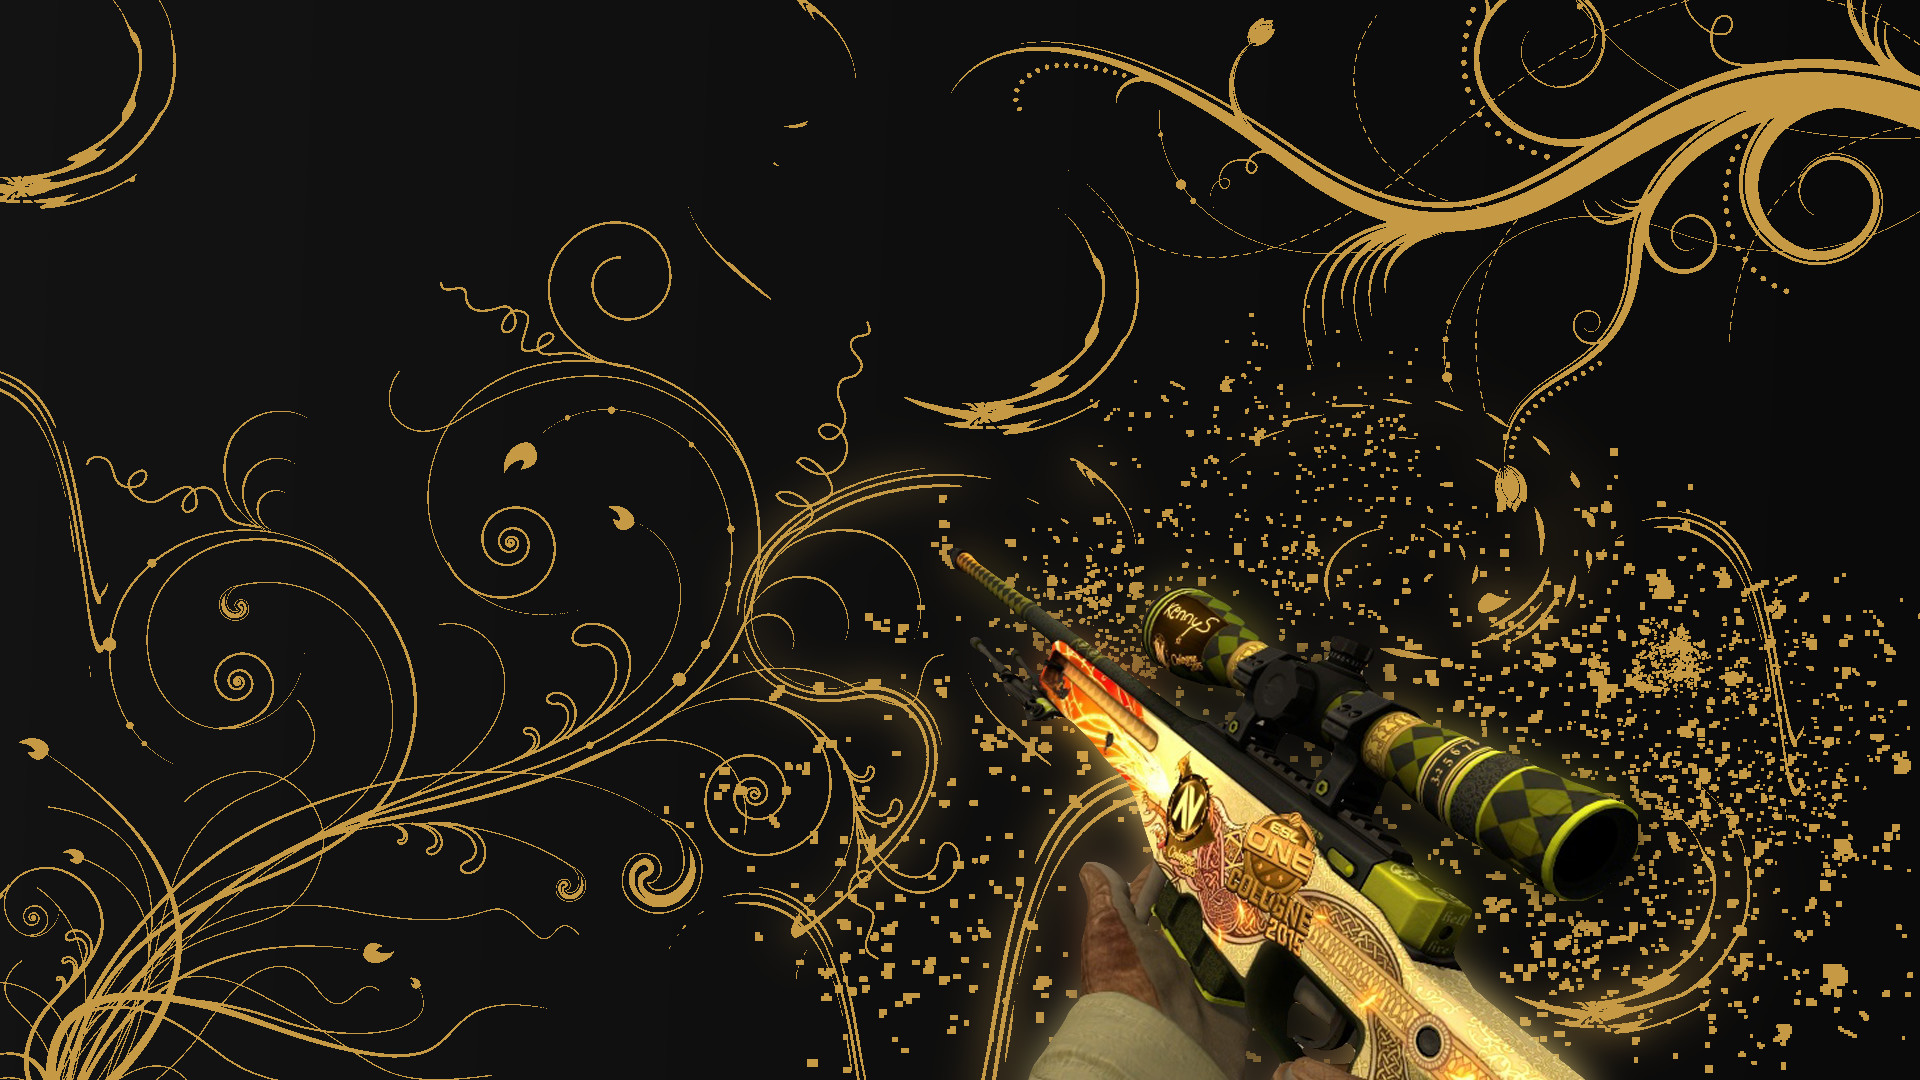 – Dragon Lore Need #iPhone #6S #Plus #Wallpaper/ #Background